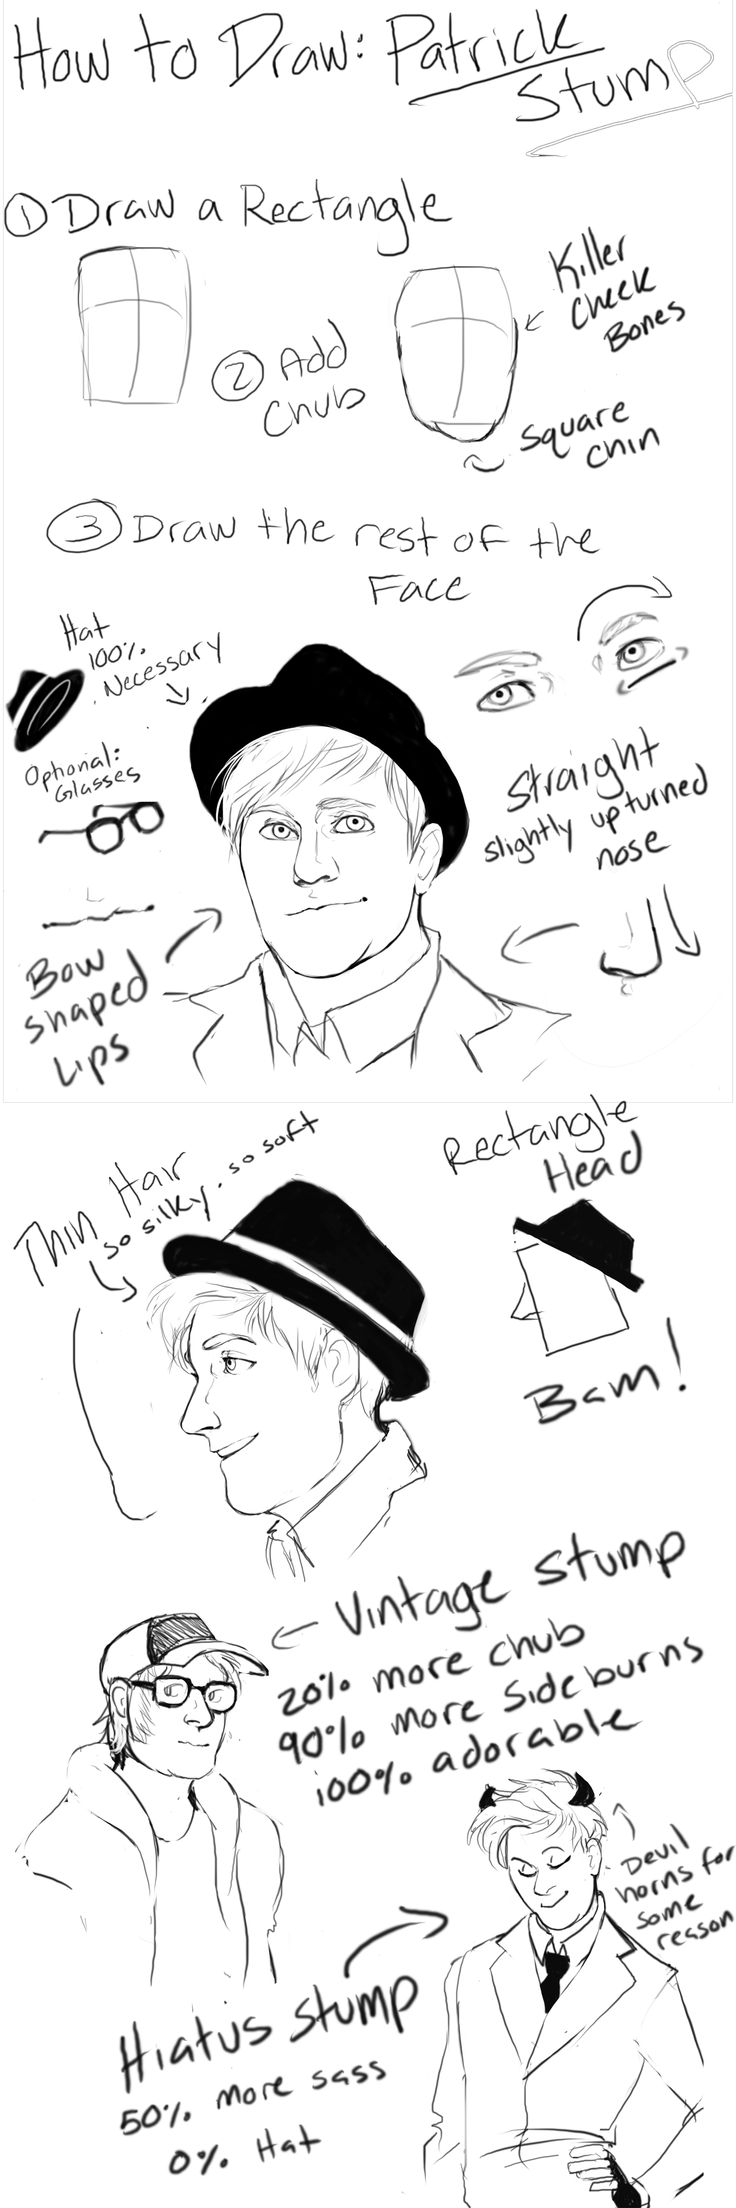 How to draw Patrick Stump